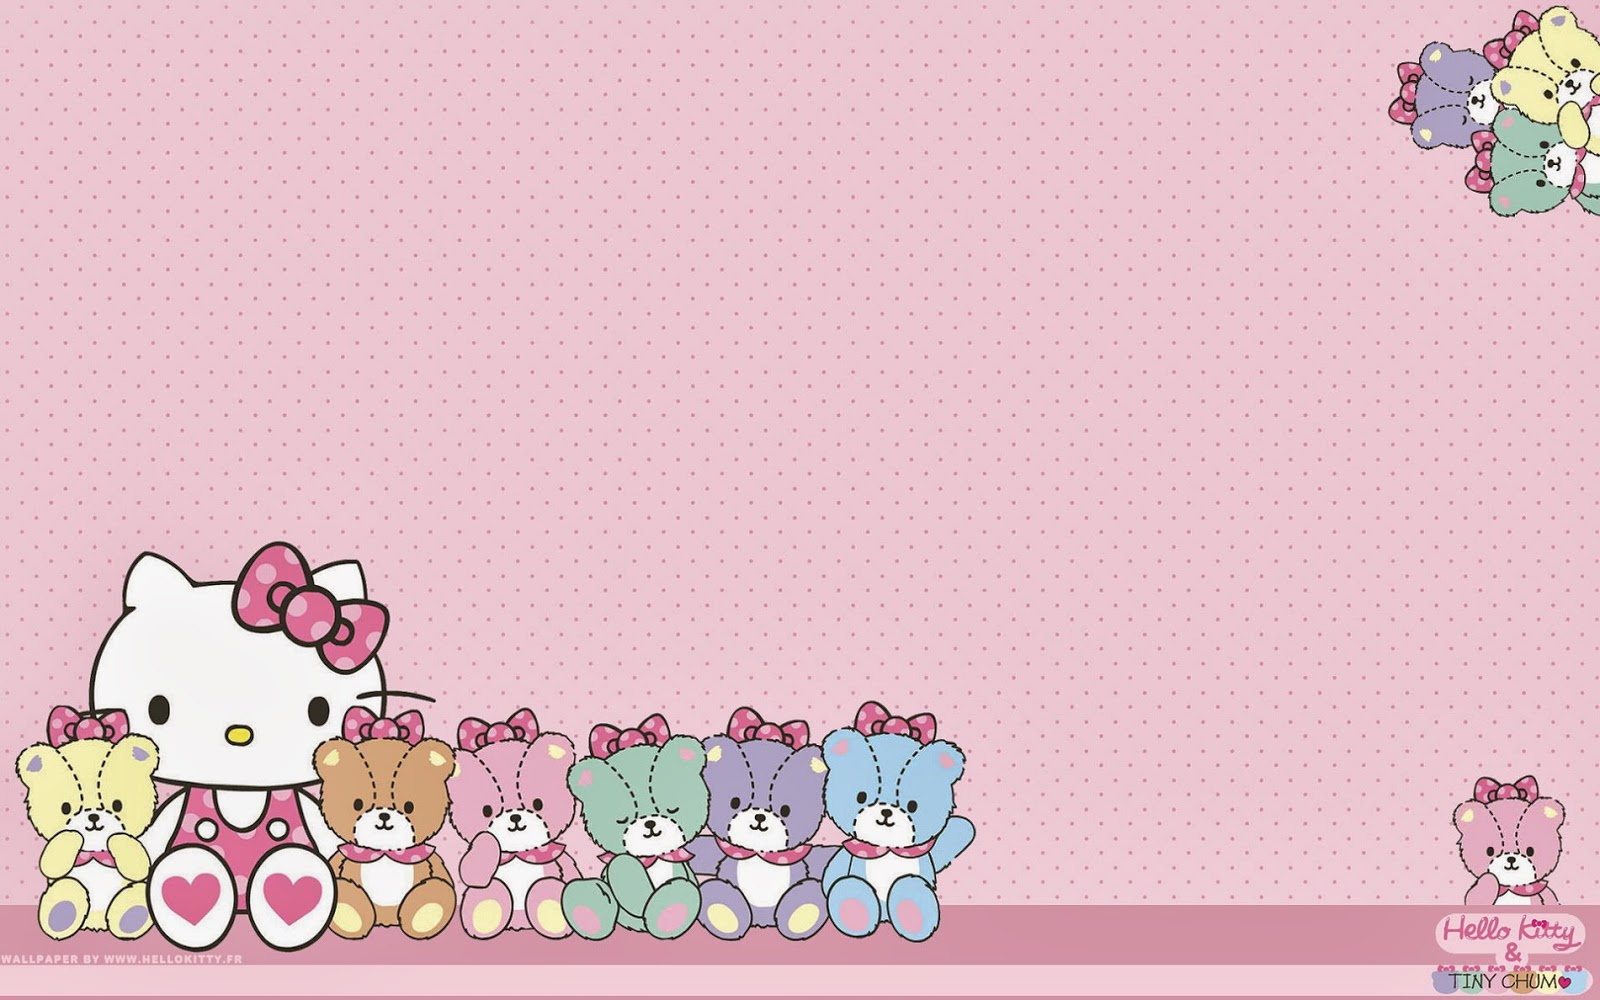 Cool Wallpaper Hello Kitty Wedding - 209091-Beautiful%2BHello%2BKitty%2BHD%2BWallpaperz  Gallery_299981.jpg